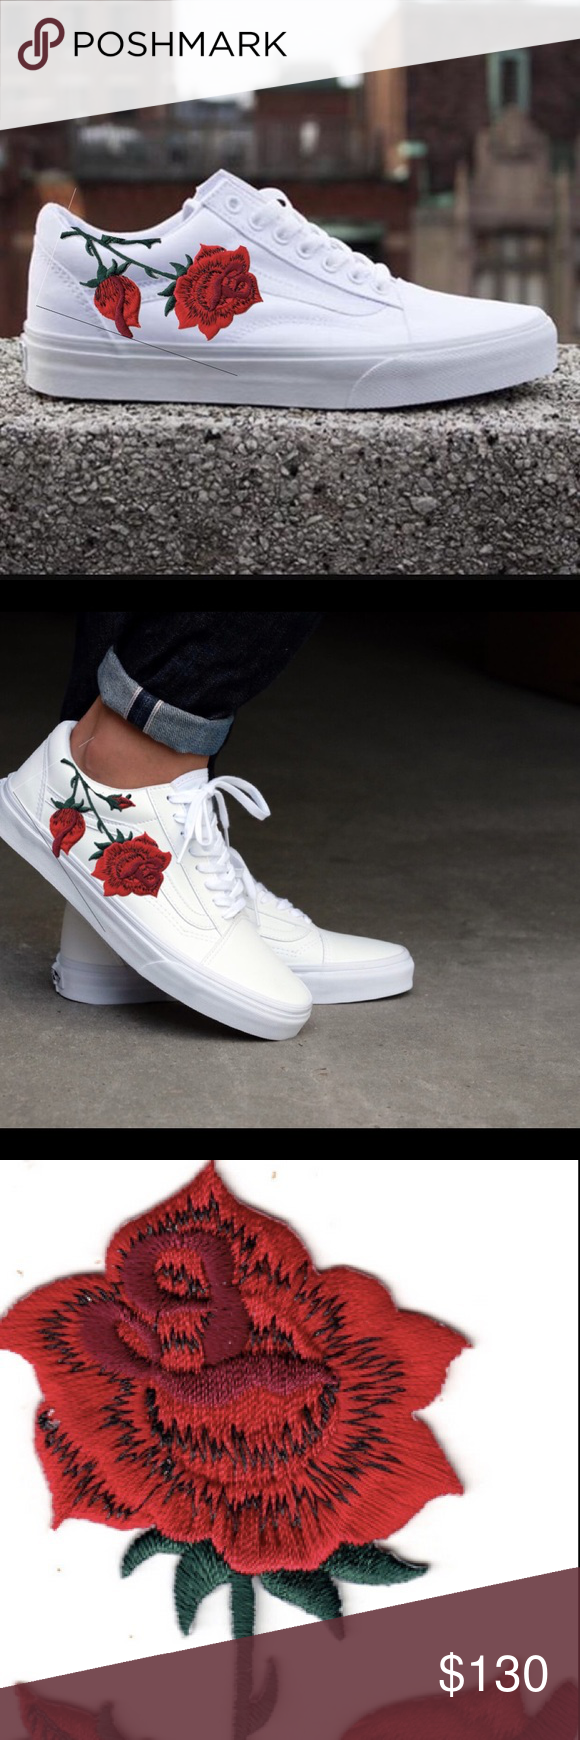 2af1363aee4c Custom Vans Old Skool White Embroidered Rose 😍🌹 customize your own!!  Beautiful sleek design of vans old skools mixed with a red rose embroidered  to give ...